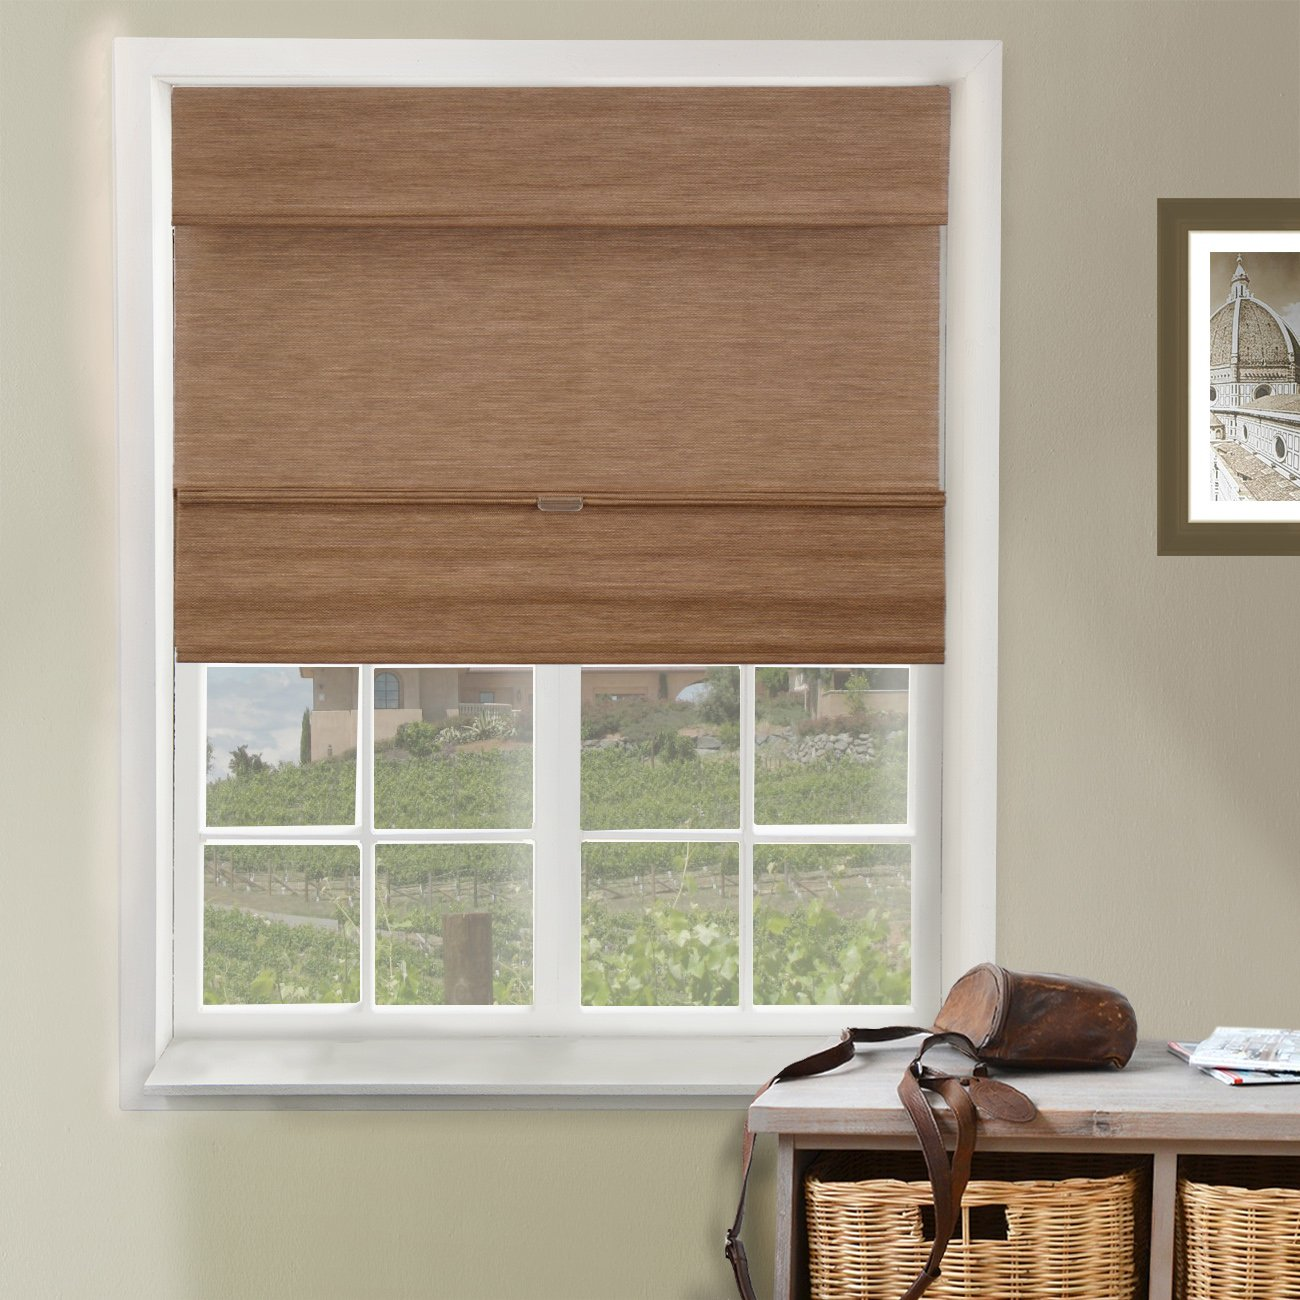 Chicology Cordless Magnetic Roman Shades Privacy Fabric Window Blind, 35''W X 64''H, Jamaican Truffle (Privacy & Natural Woven) by CHICOLOGY